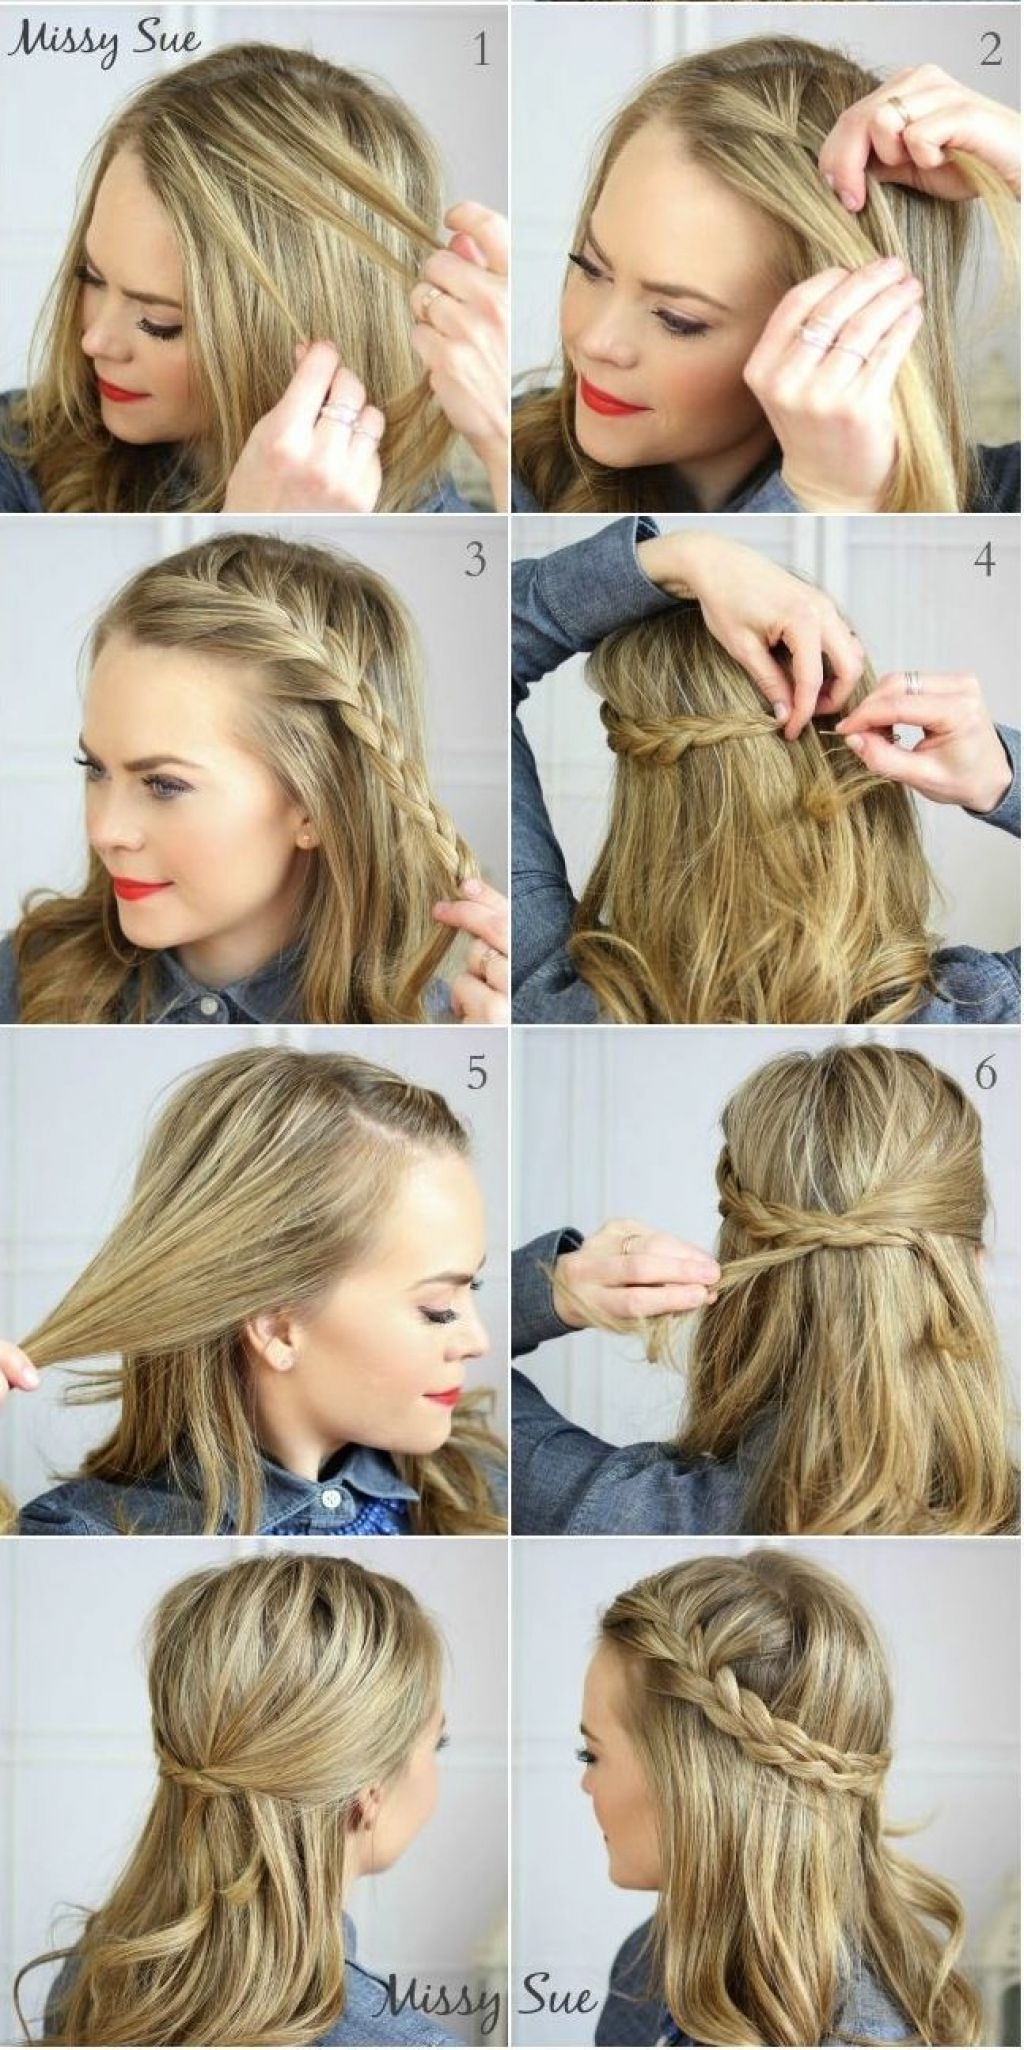 203 Casual Hairstyles For Long Hair Hairstyles 2019 Casual Braided Hairstyles For Medium Hair